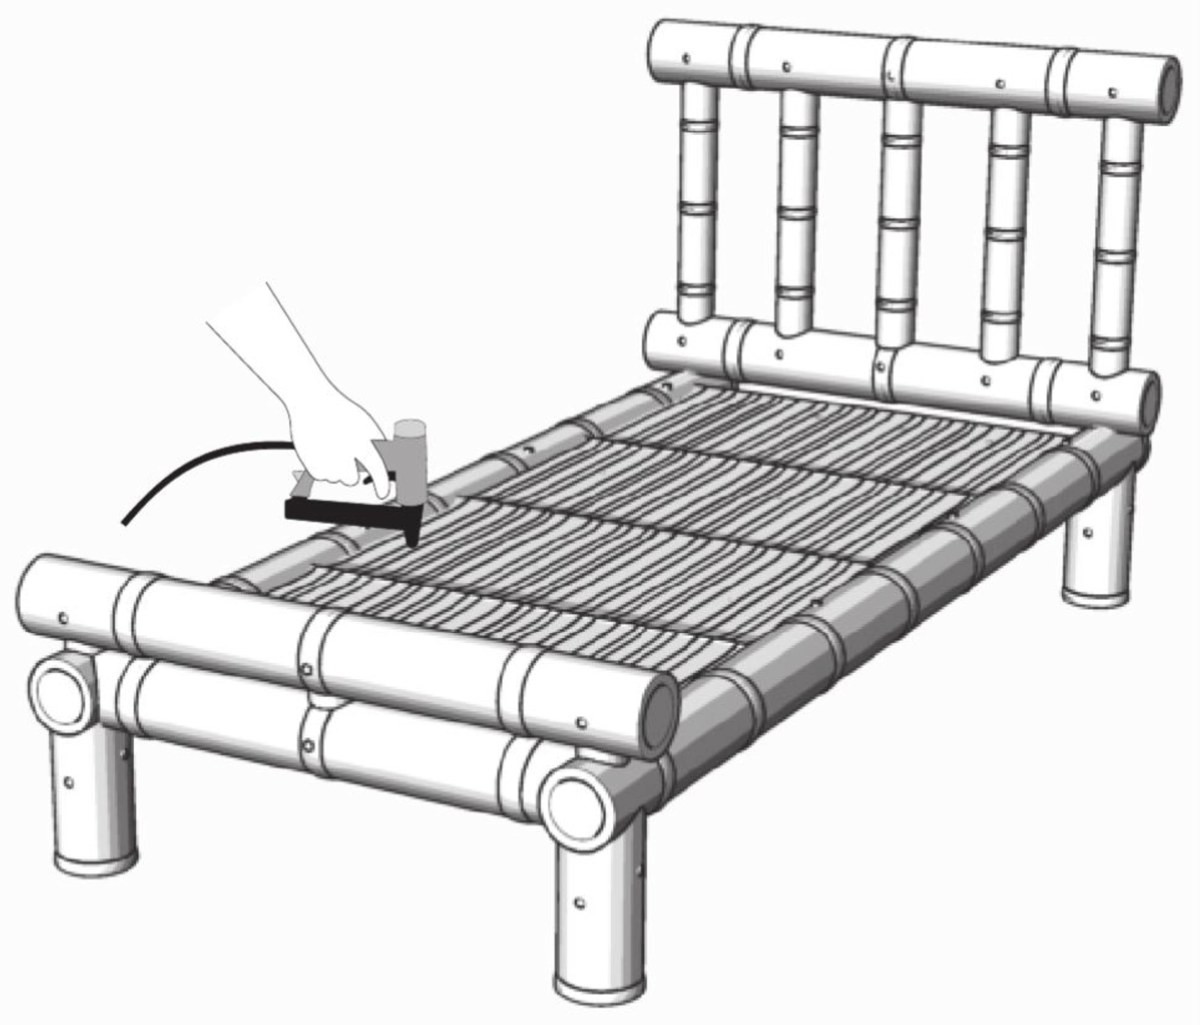 1200x1025 How To Make A Bamboo Bed Bamboo Bed Frame Viva Decor